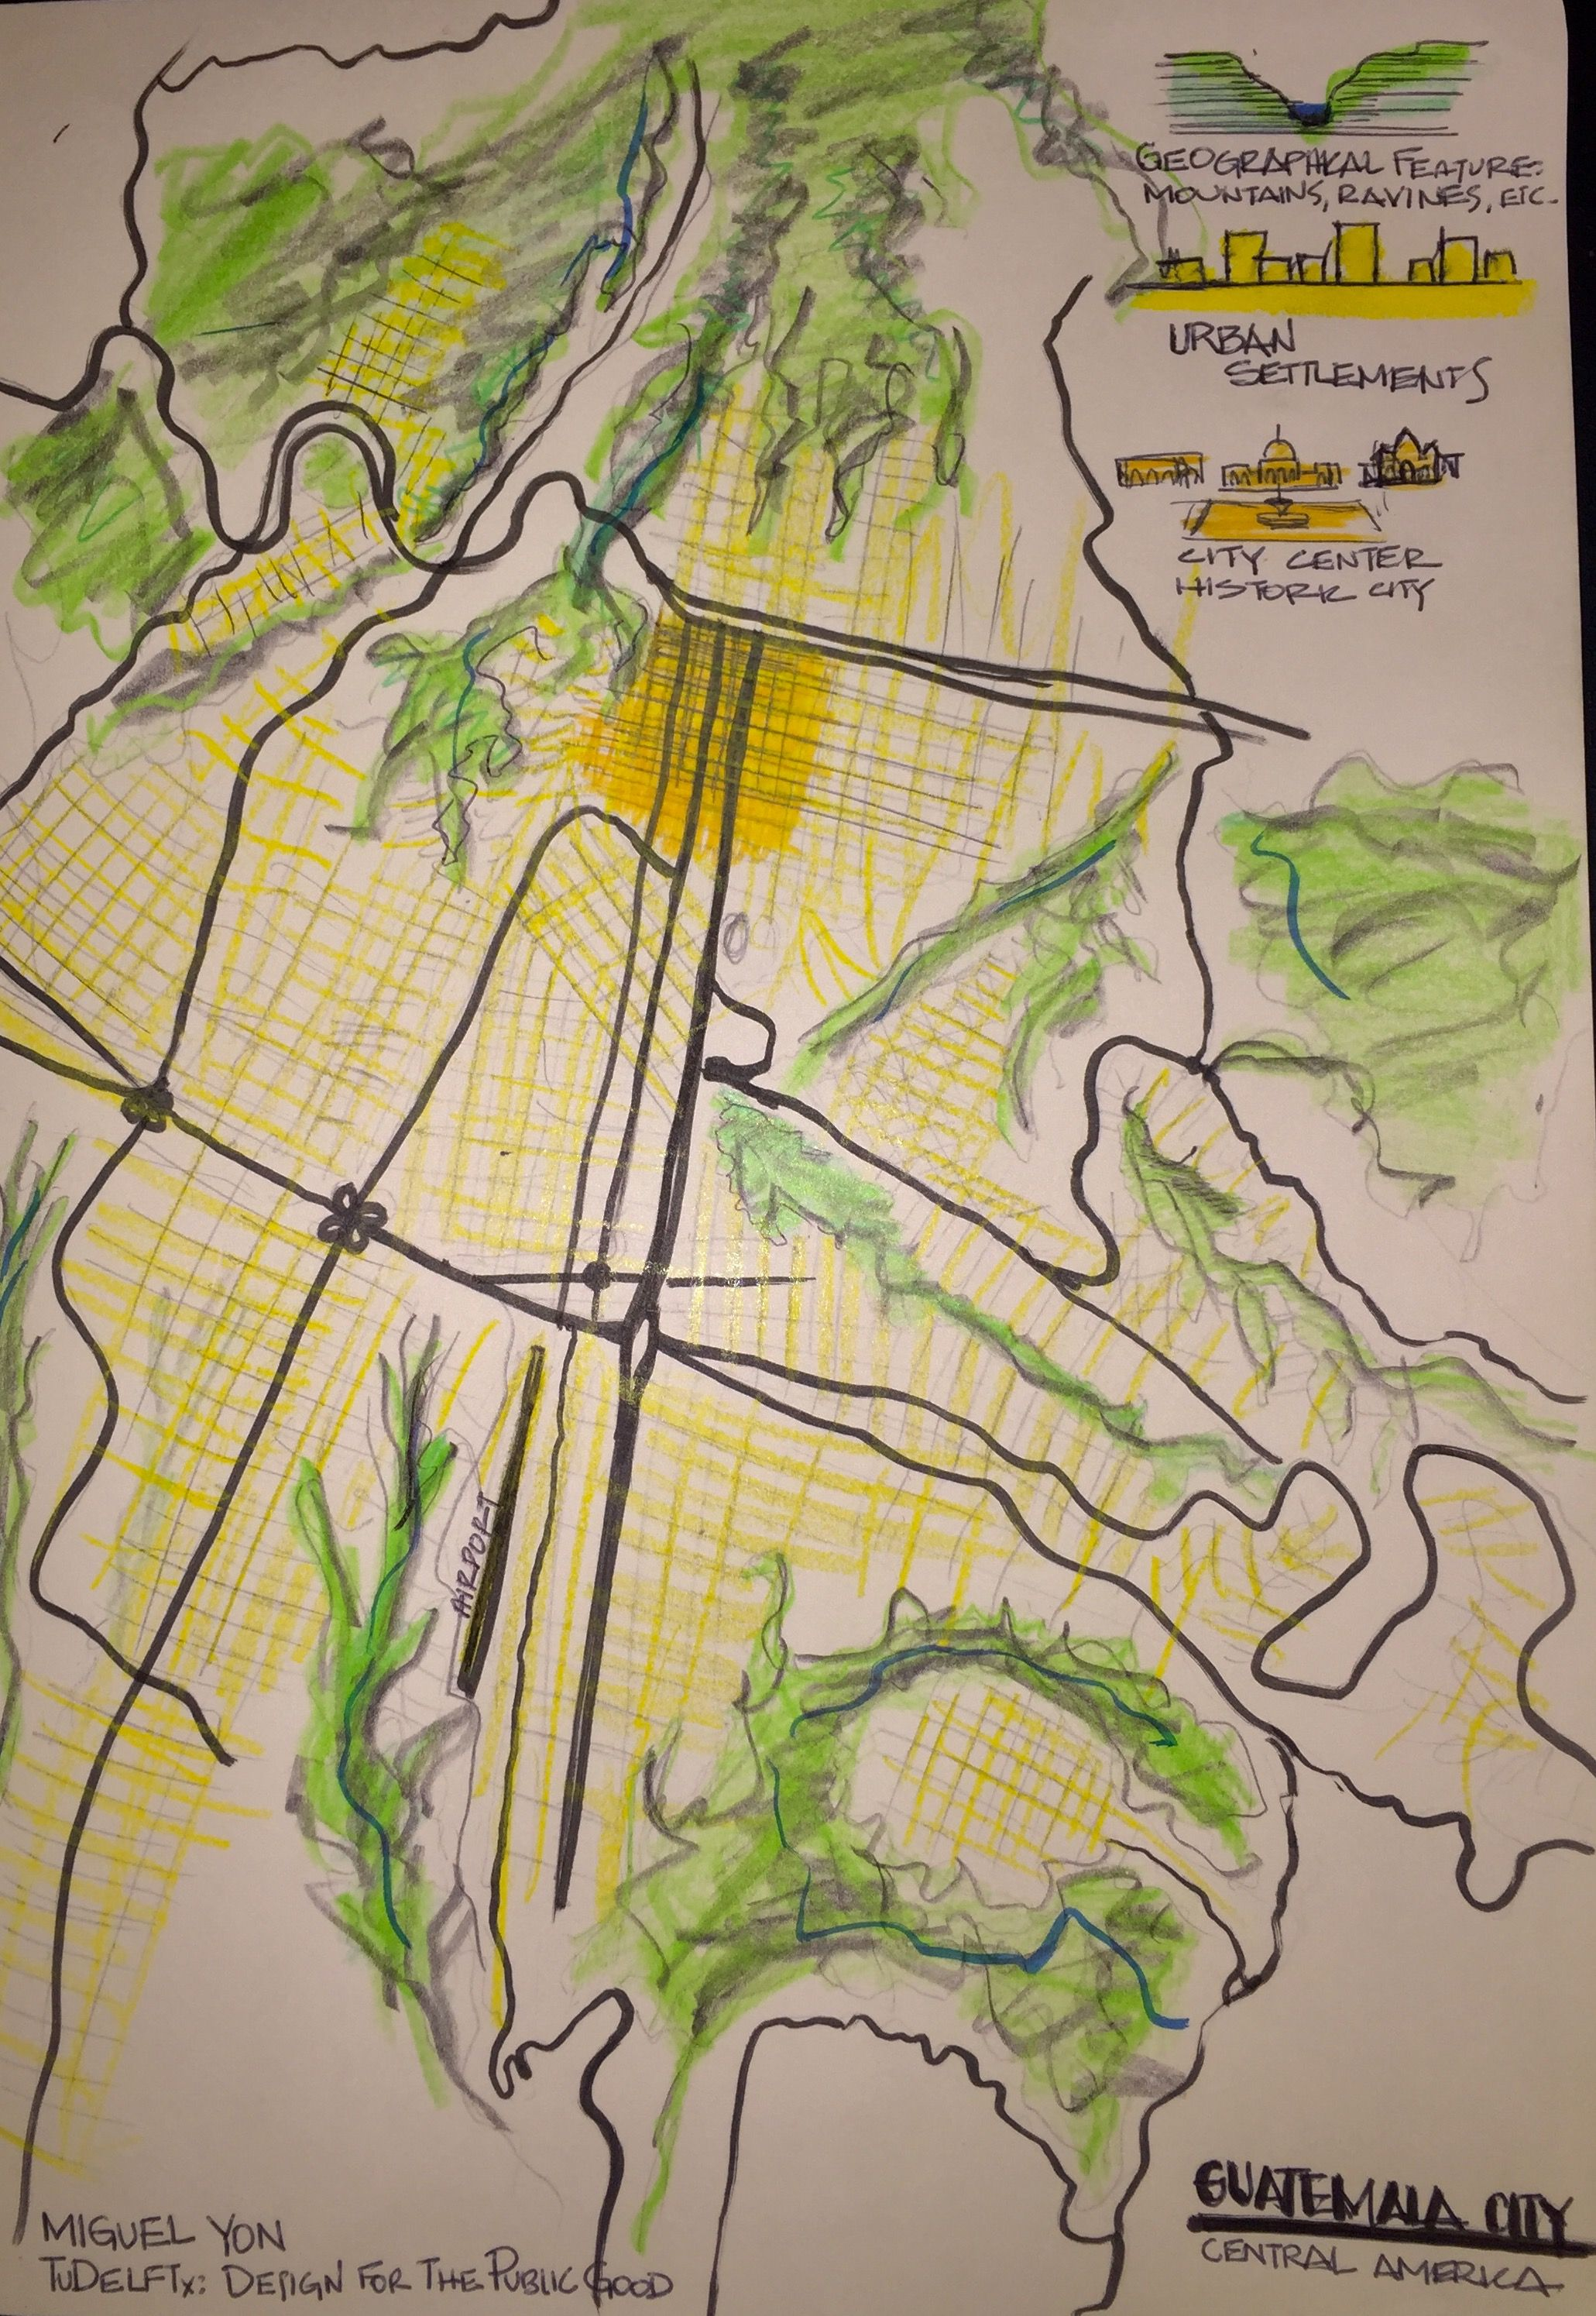 Map Usa East Coast Cities%0A Week    Hello  my name is Miguel Yon Moll  I am an architect  This a  traced map of Guatemala City in wich the geographical features that have  shaped the